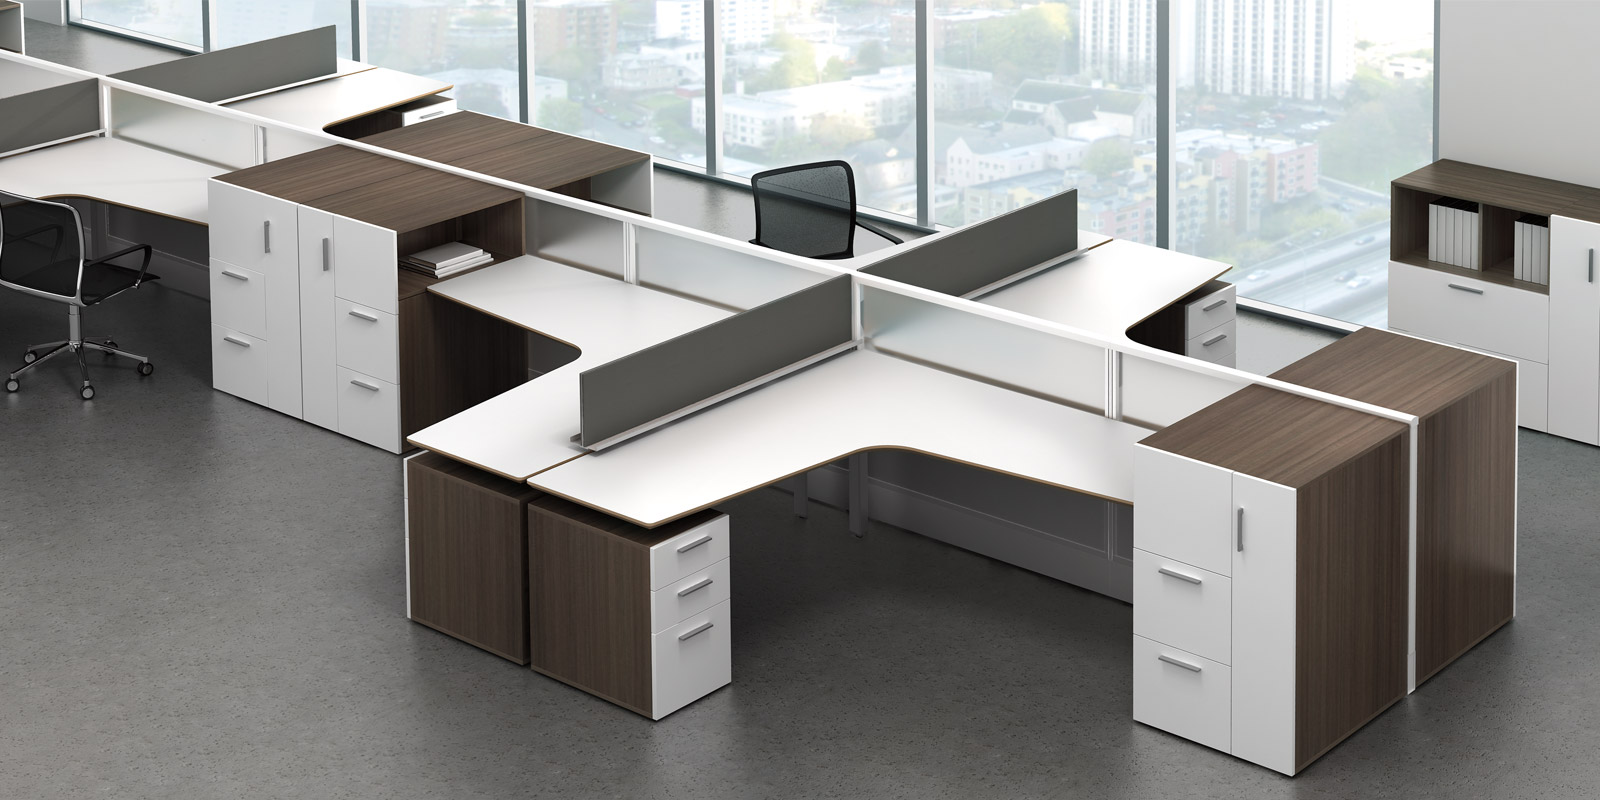 WoW Watson M2 Office Furniture Enhance Your Open